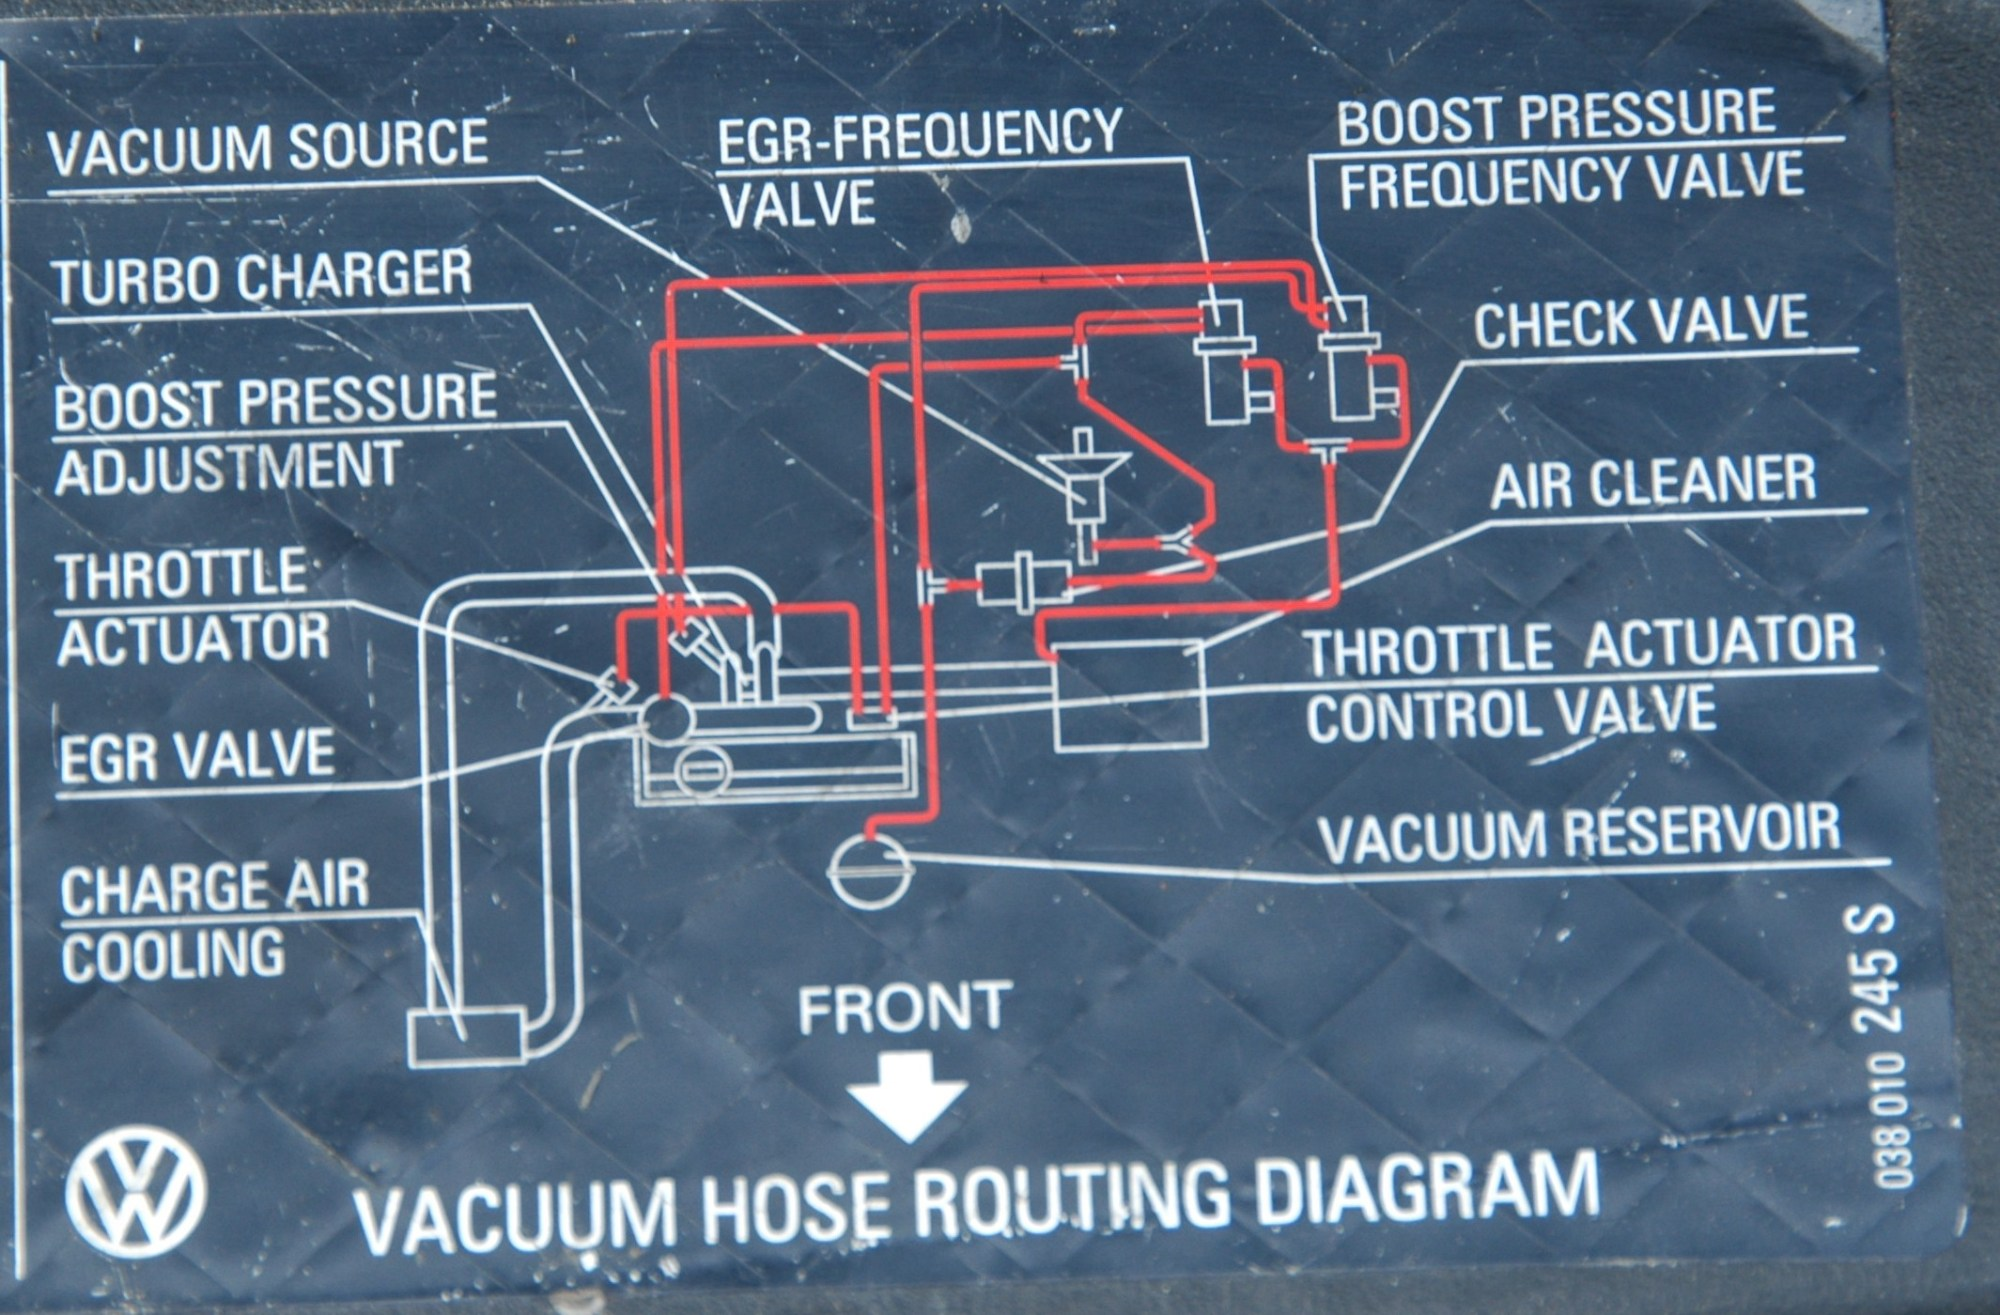 hight resolution of vw tdi vacuum diagram wiring diagram expert 2001 vw jetta vacuum hose diagram 2000 vw jetta